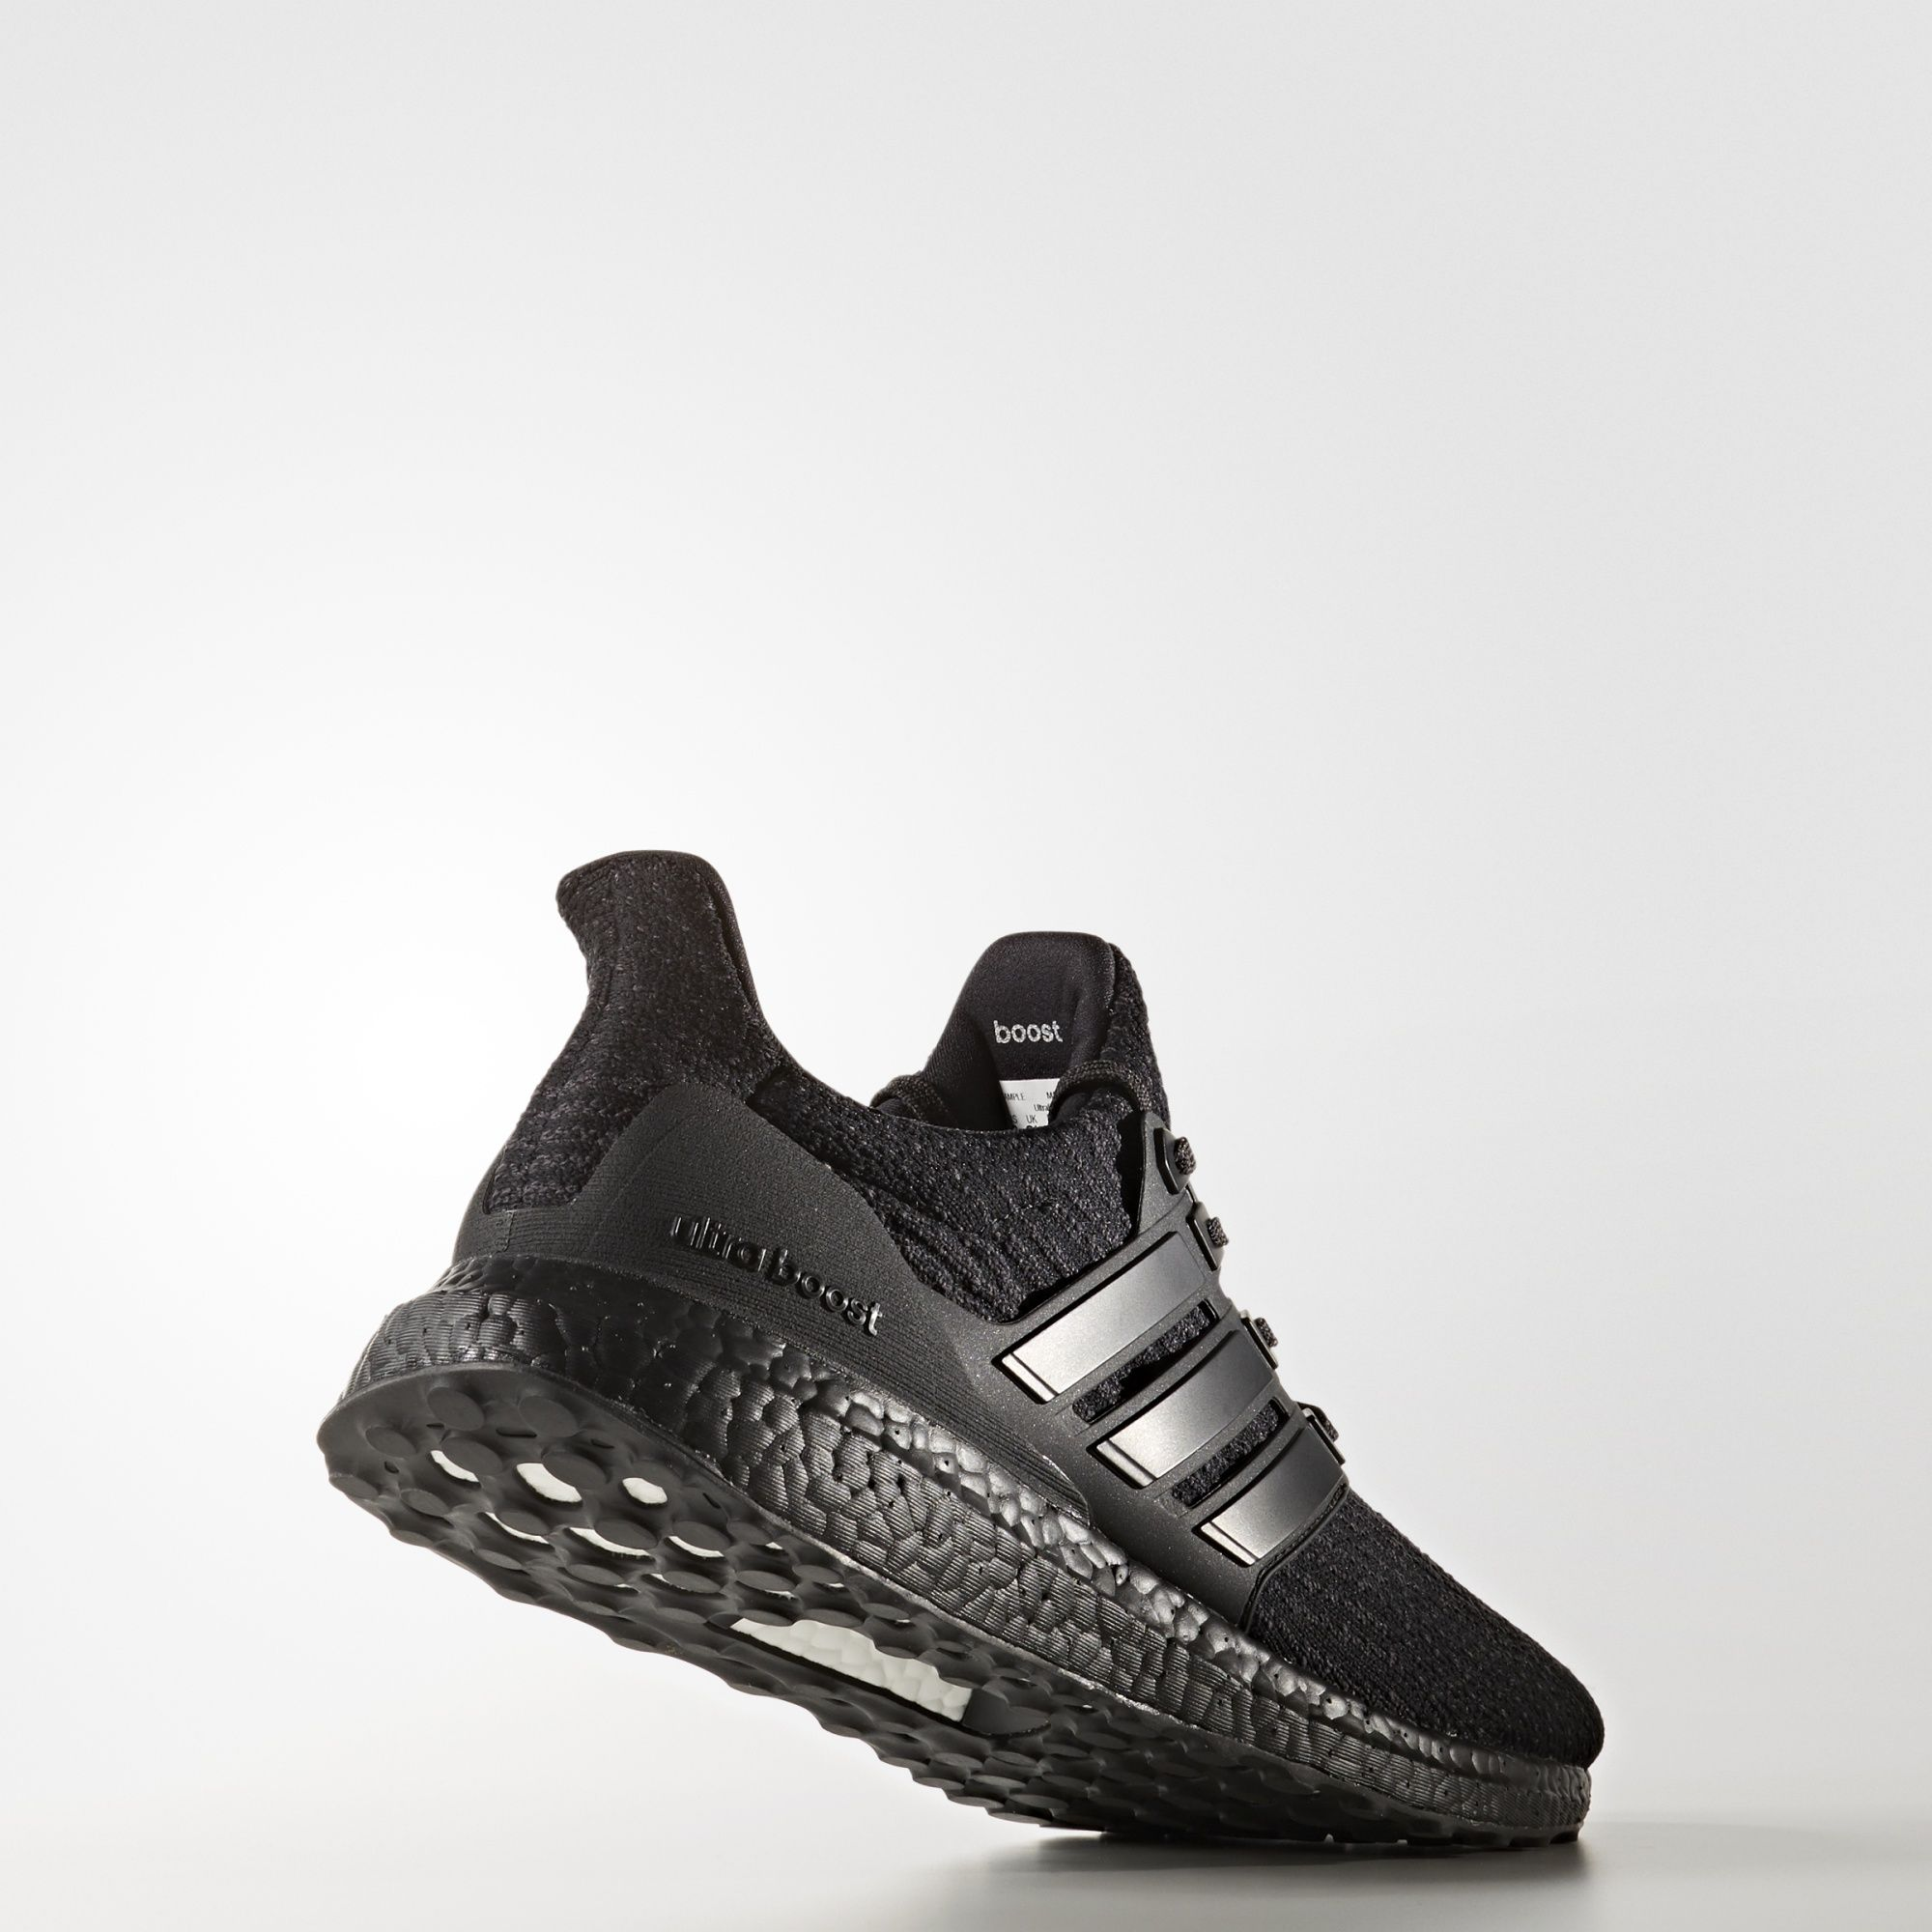 adidas Ultra Boost 3.0 Triple Black CG3038 3